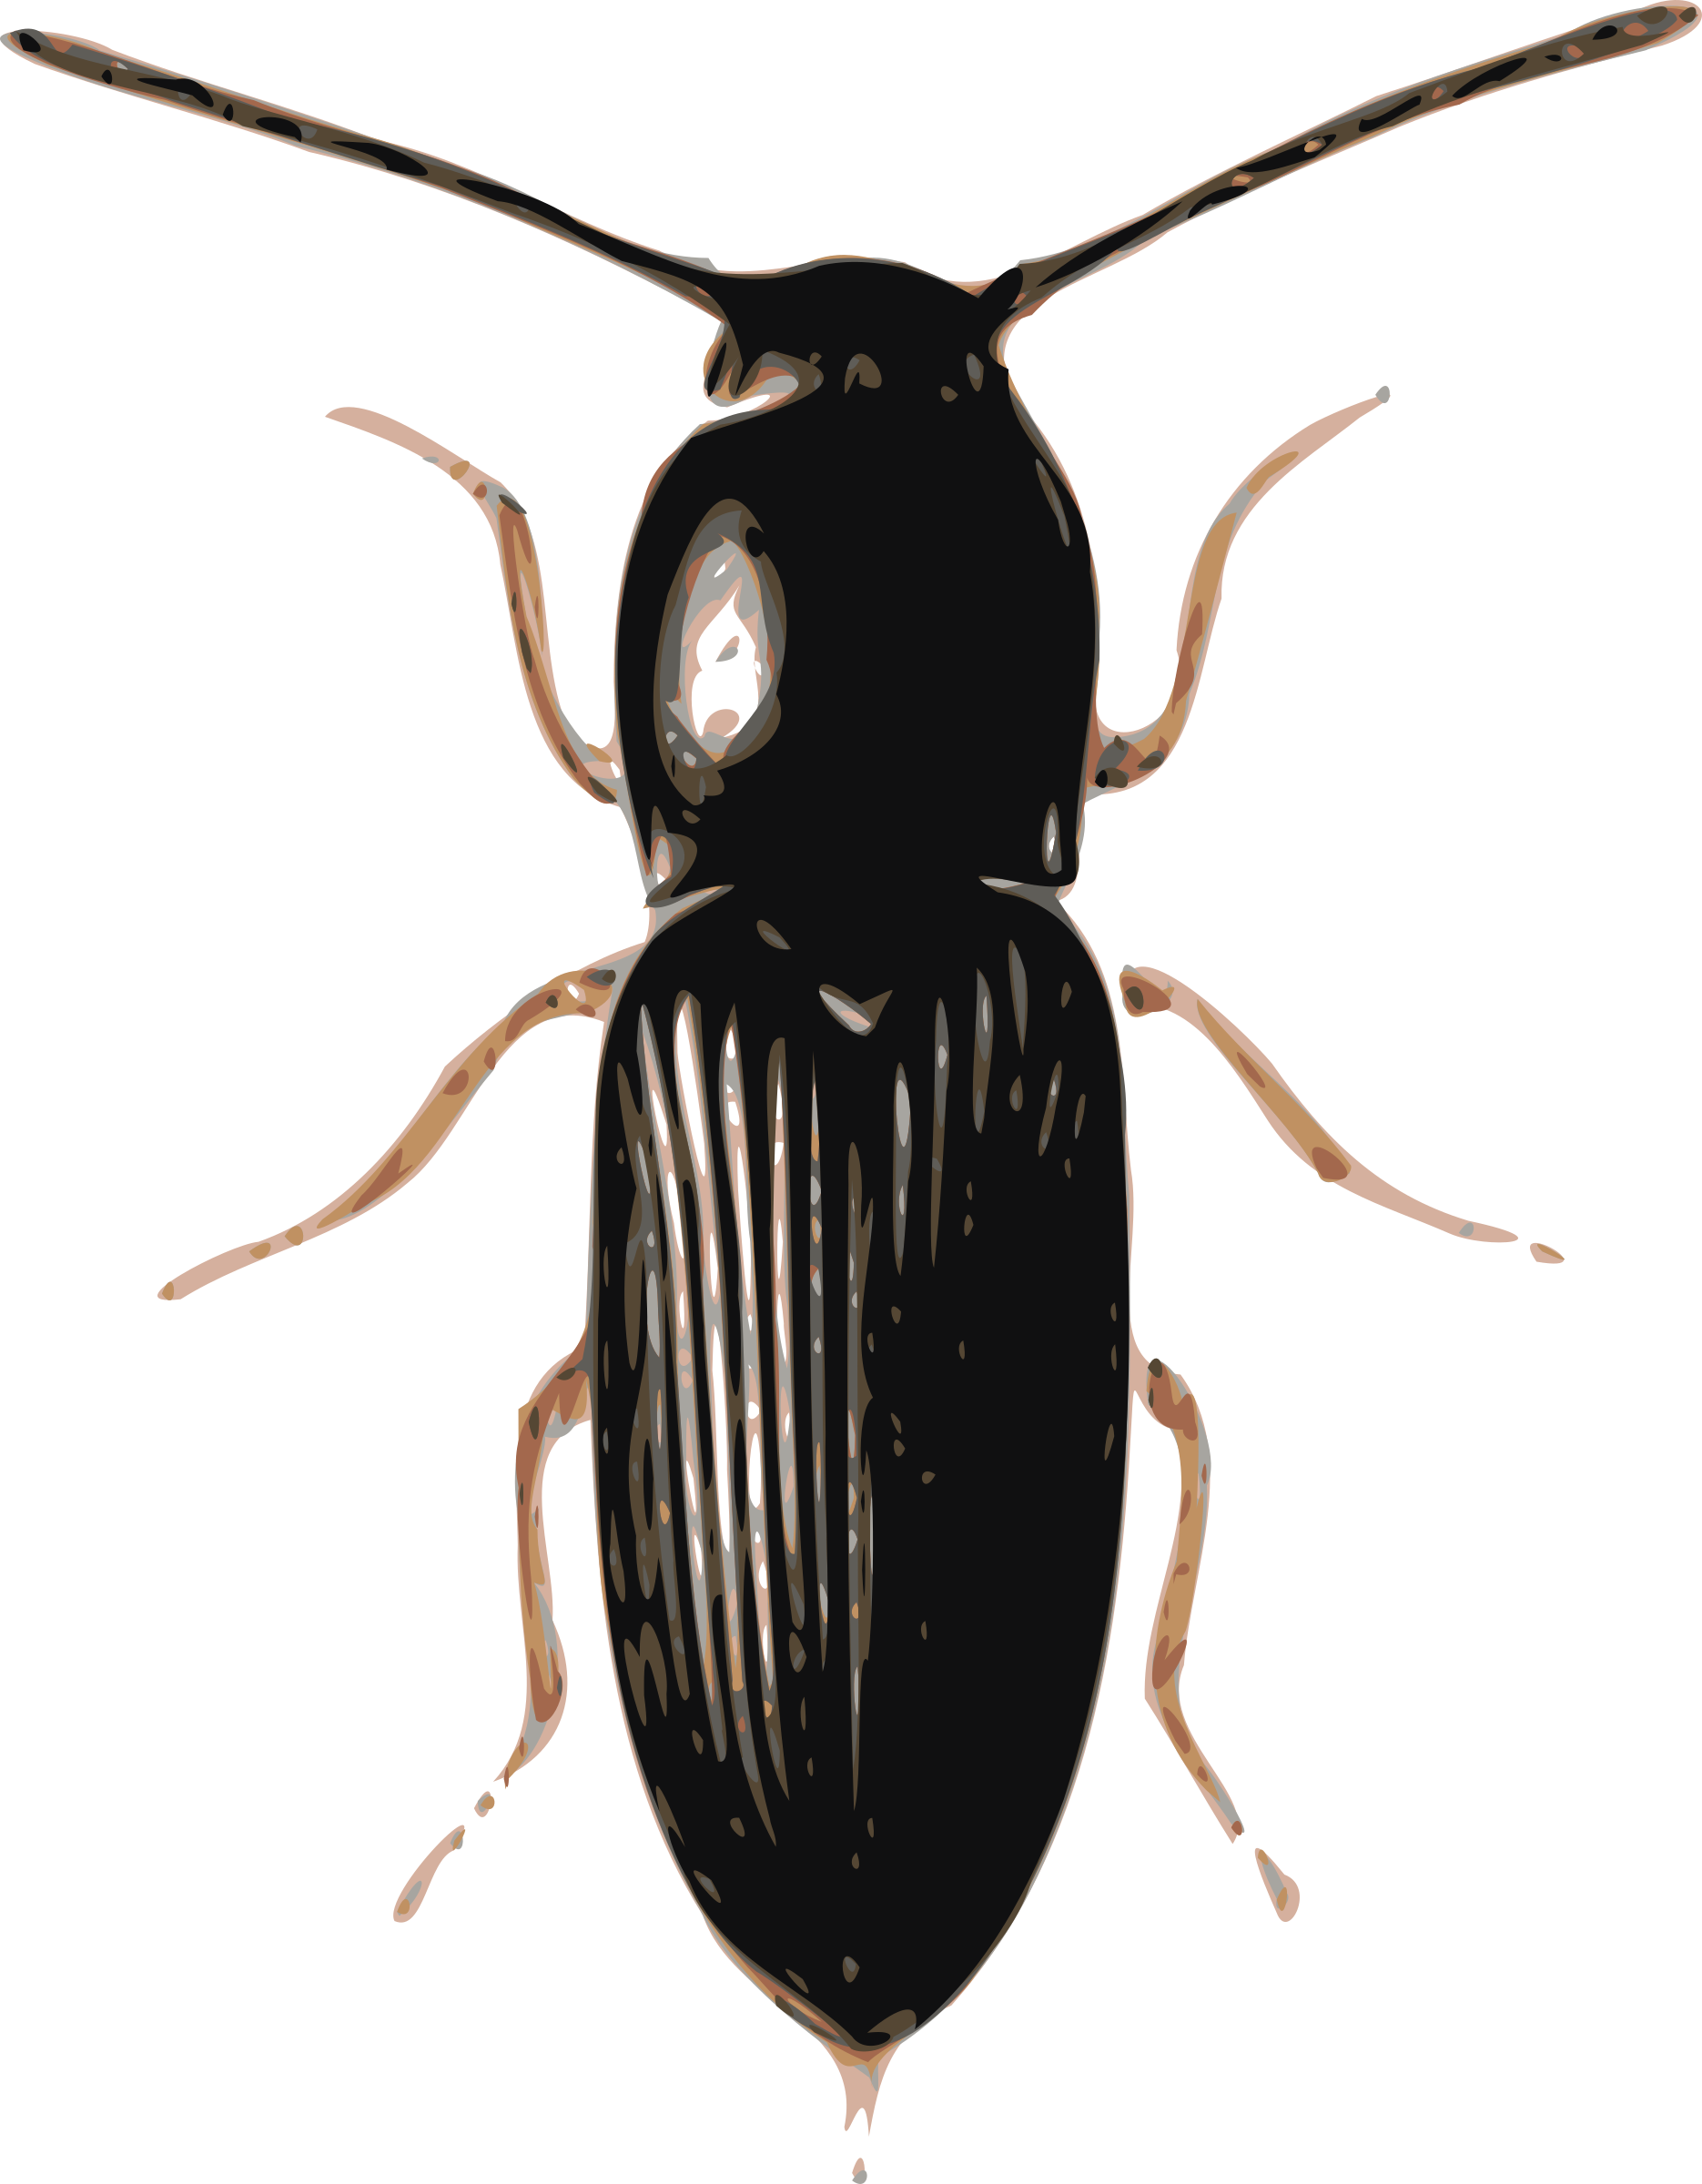 Cardiophorus big image png. Insects clipart darkling beetle